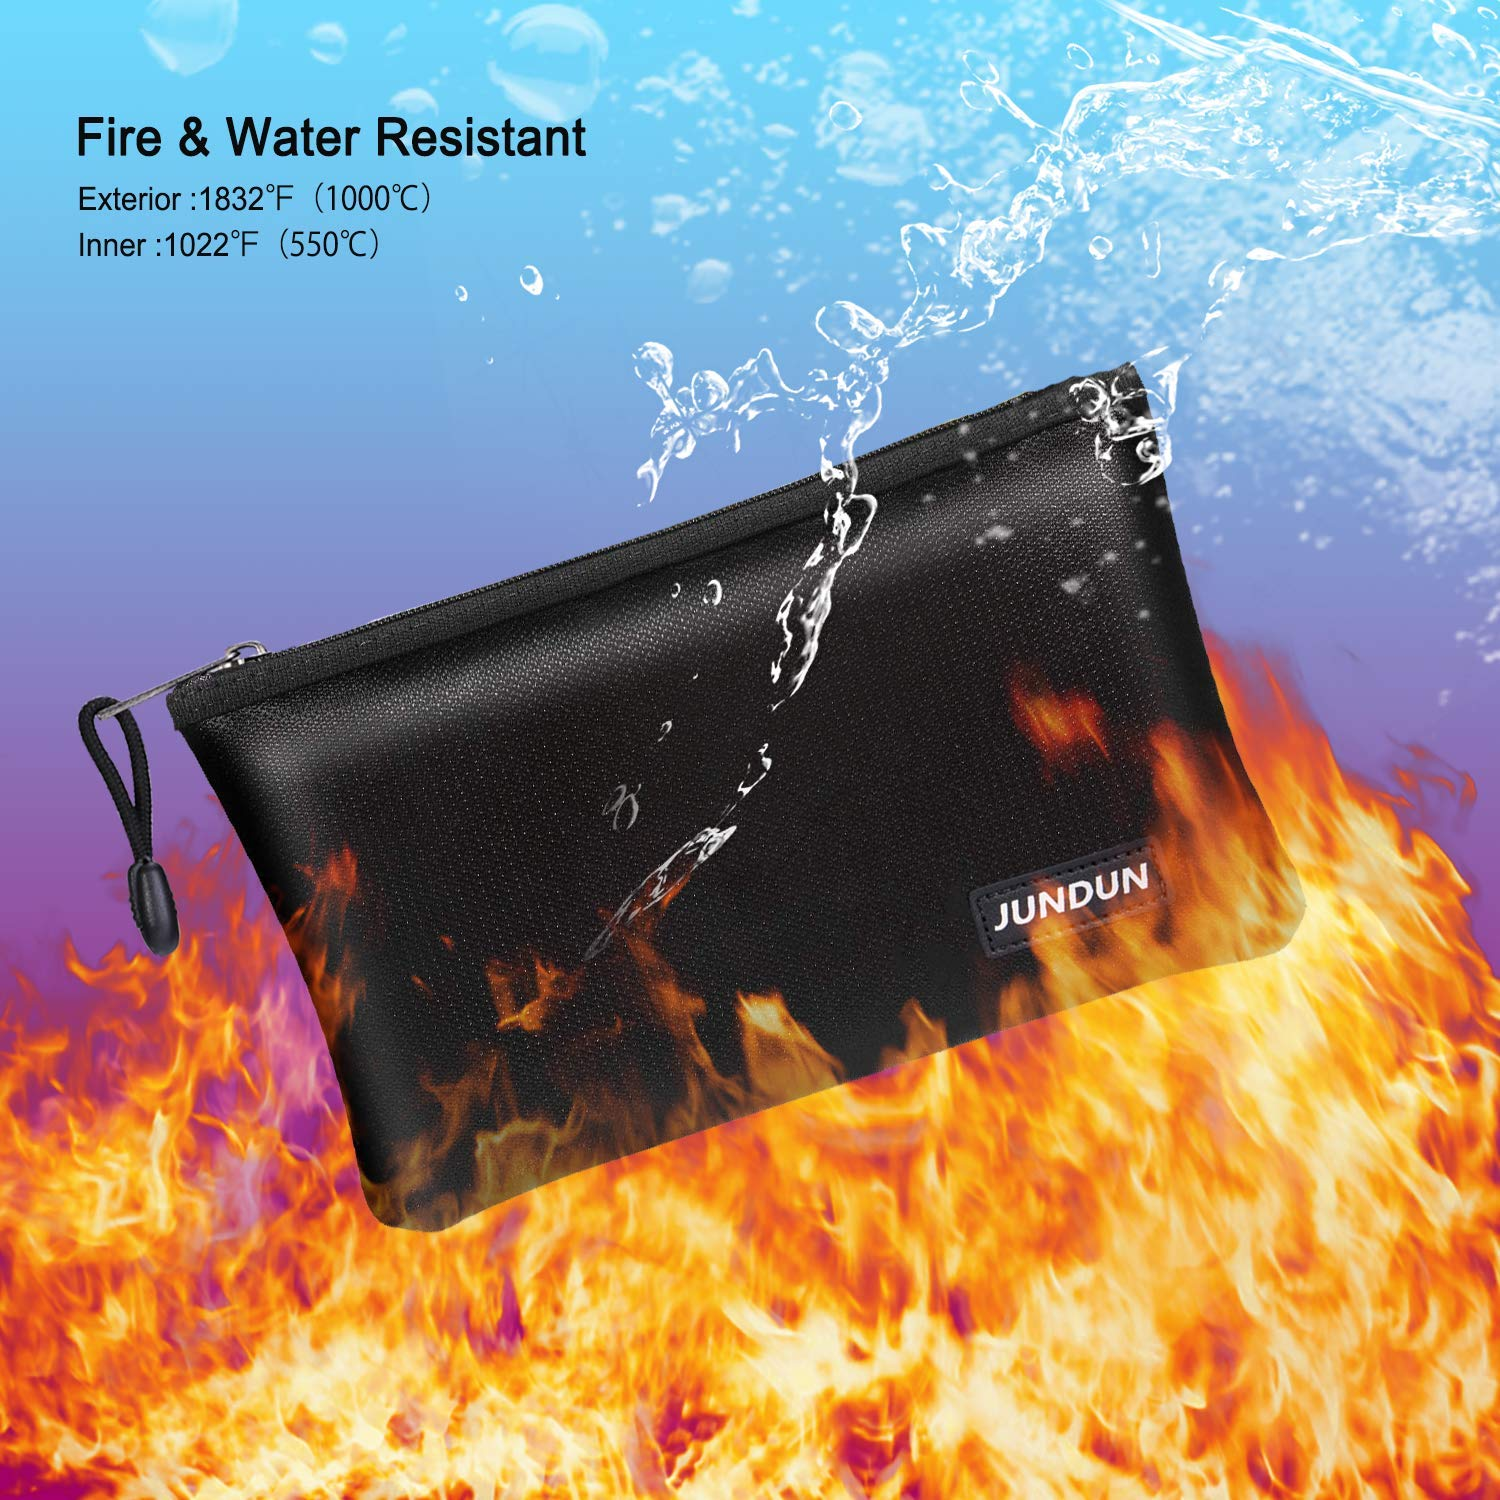 10.6x6.7 Fire and Water Resistant Cash Bag with Zipper Closure,Fireproof Safe Storage Pouch Envelope for A5 File Folder,Document Bank Deposit,Passport,Jewelry 10.6x6.7 Fire and Water Resistant Cash Bag with Zipper Closure JUNDUN Fireproof Money Bag